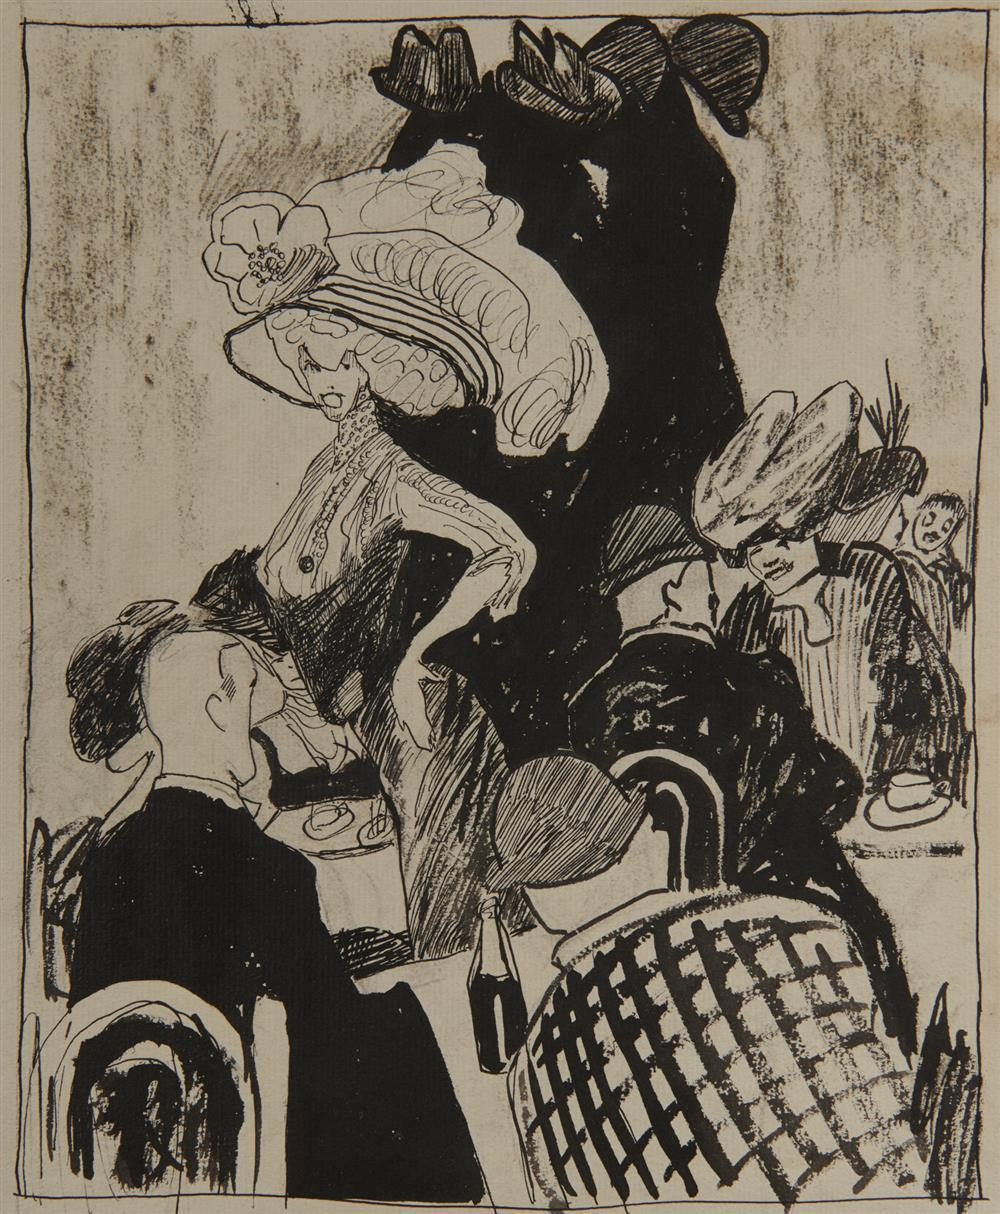 Attributed to JULIA FEININGER, (German, 1880-1970), Untitled (Cafe Scene), ink on paper, 9 3/4 x 7 7/8 in.